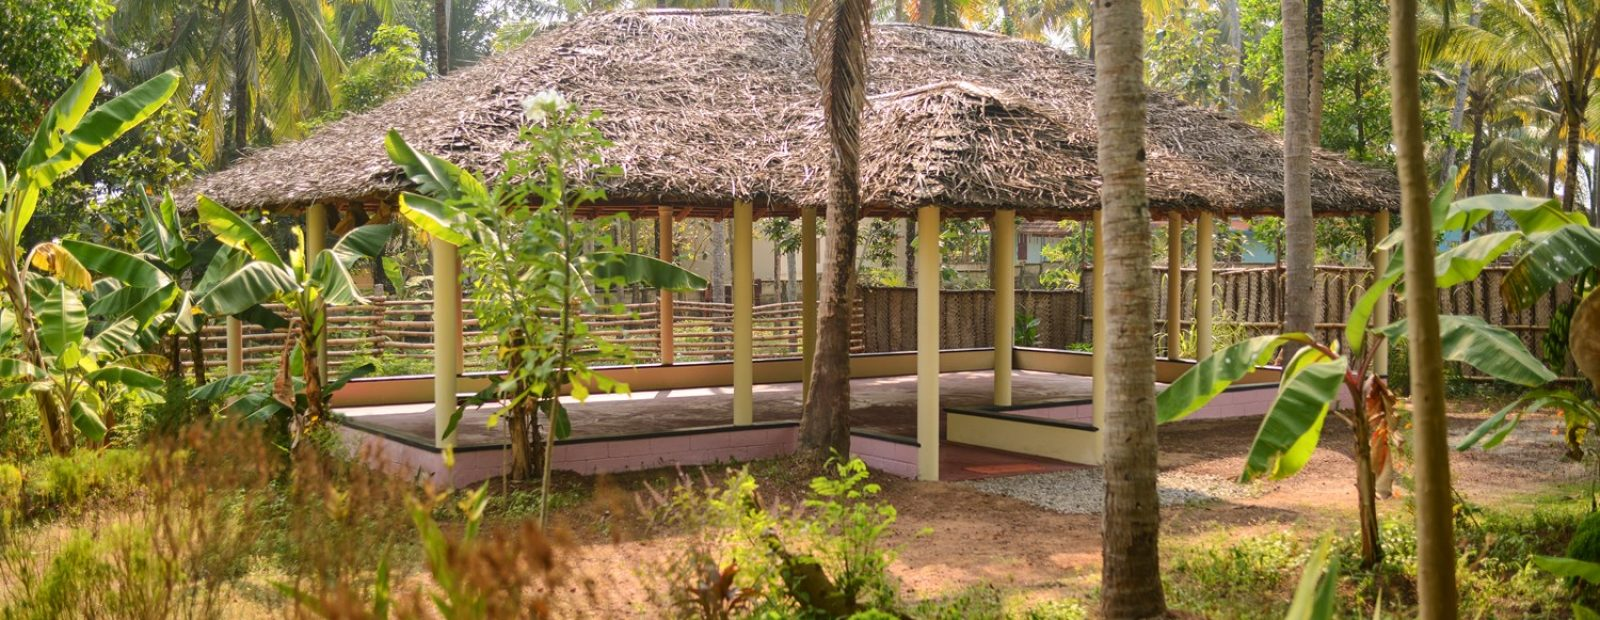 Yoga hall, for asanas, pranayama and meditation varkala